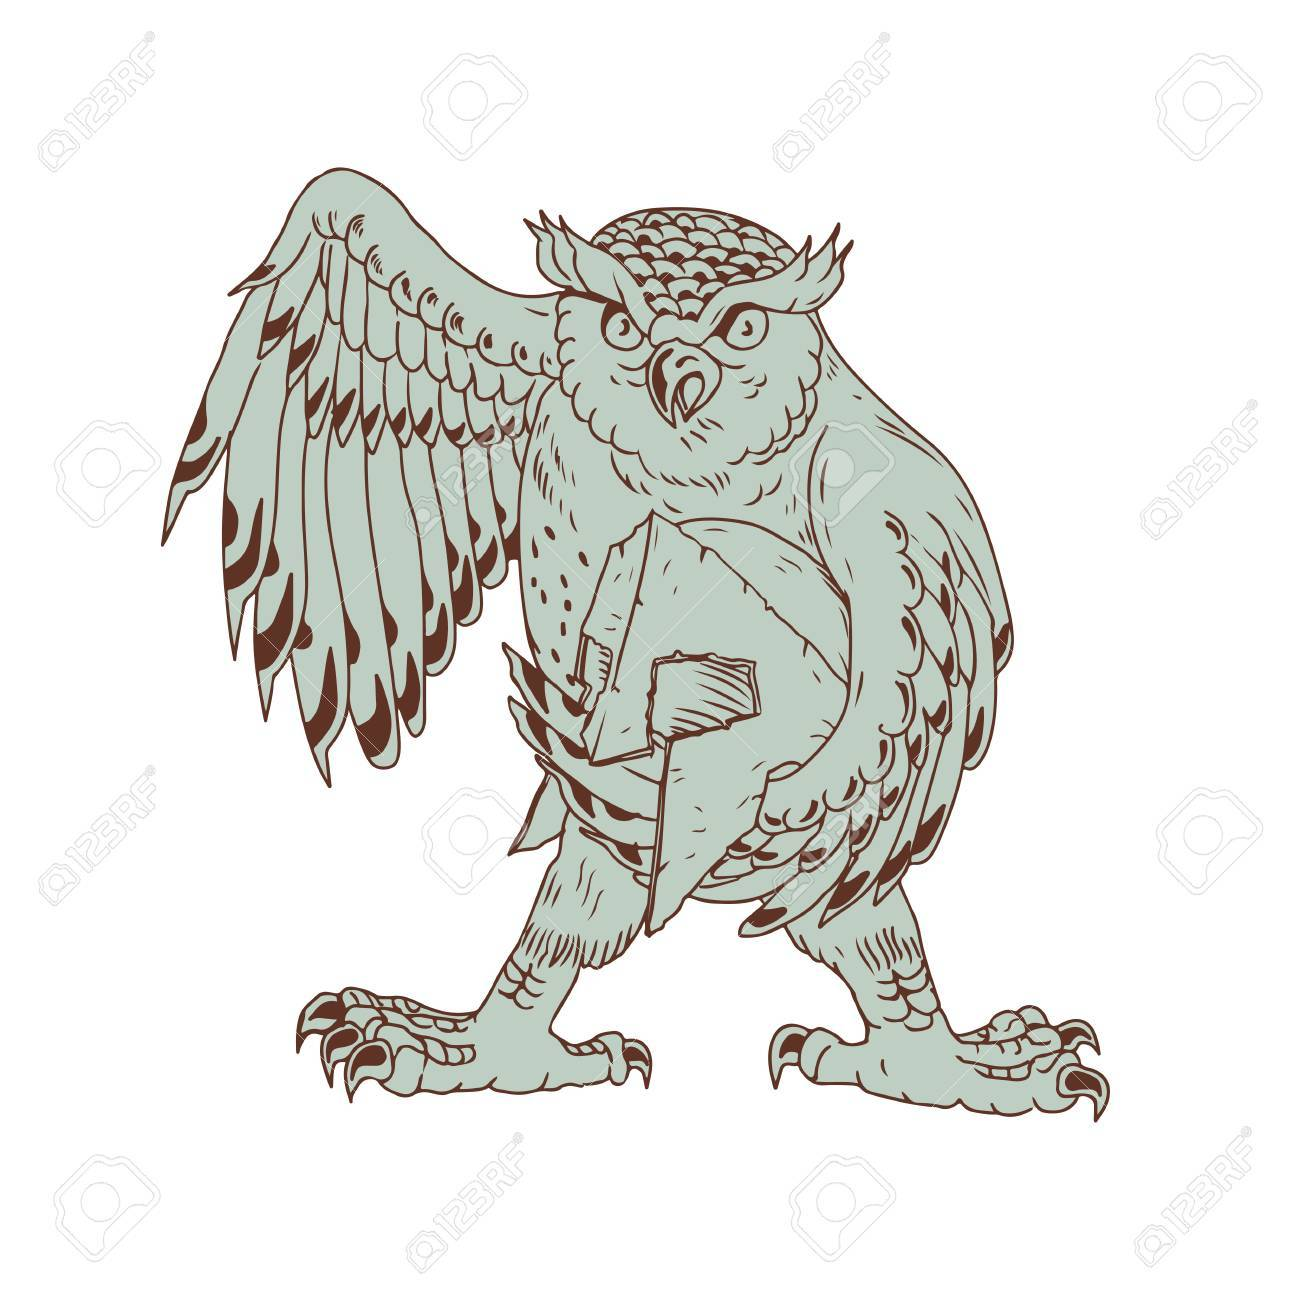 - Drawing Sketch Style Illustration Of An Angry Great Horned Owl